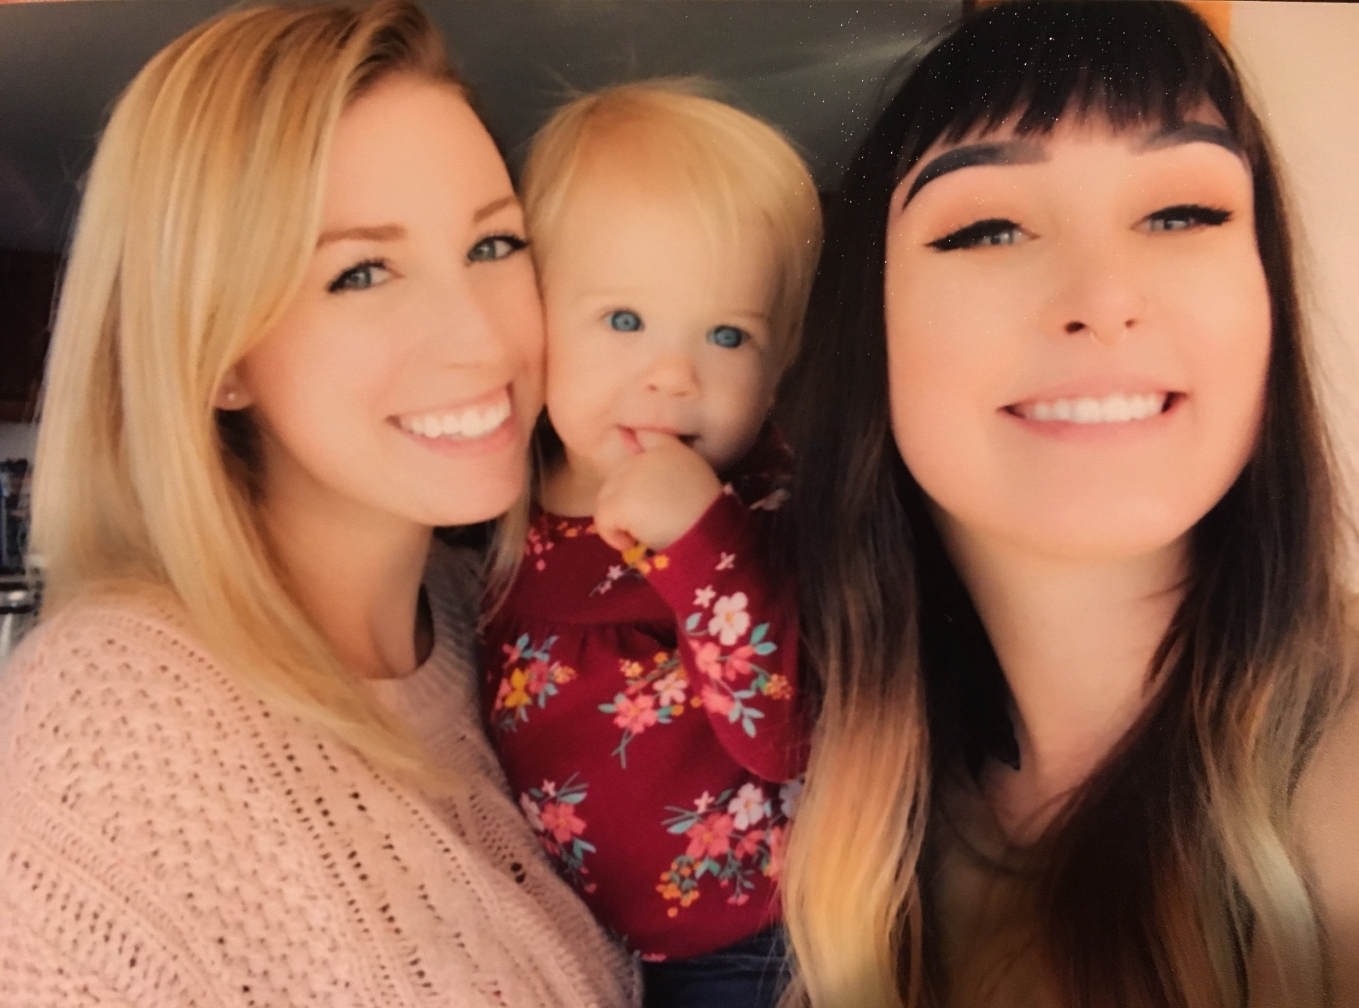 The smiling and beautiful Ashley and Dakota with Ashley's young daughter